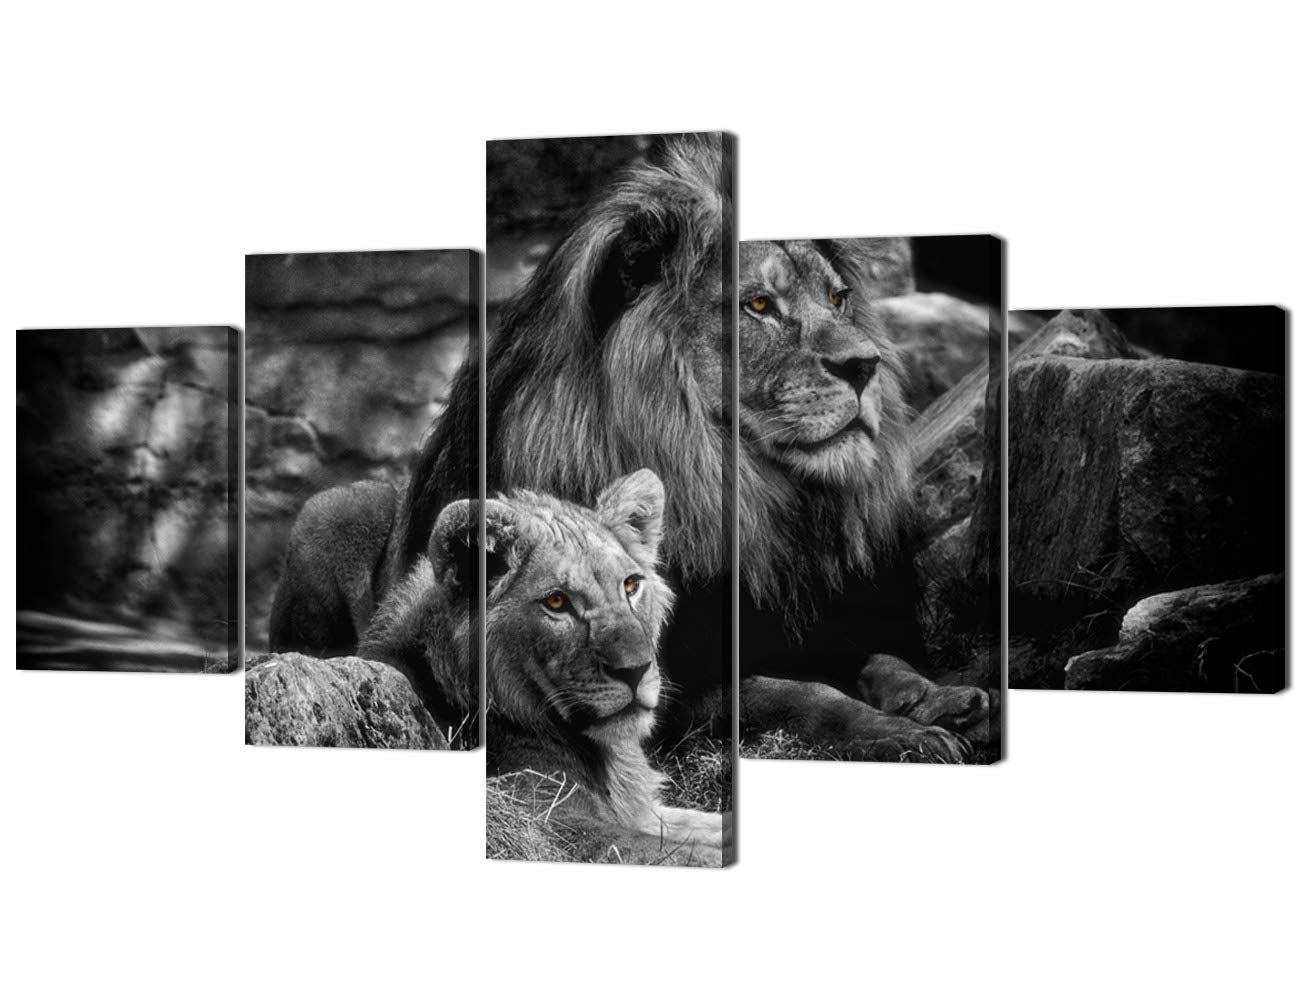 Yatsen bridge modern lion and lioness canvas wall art 5 panels black and white lions painting prints on posters easy to hang for home decor 70 wx40 h